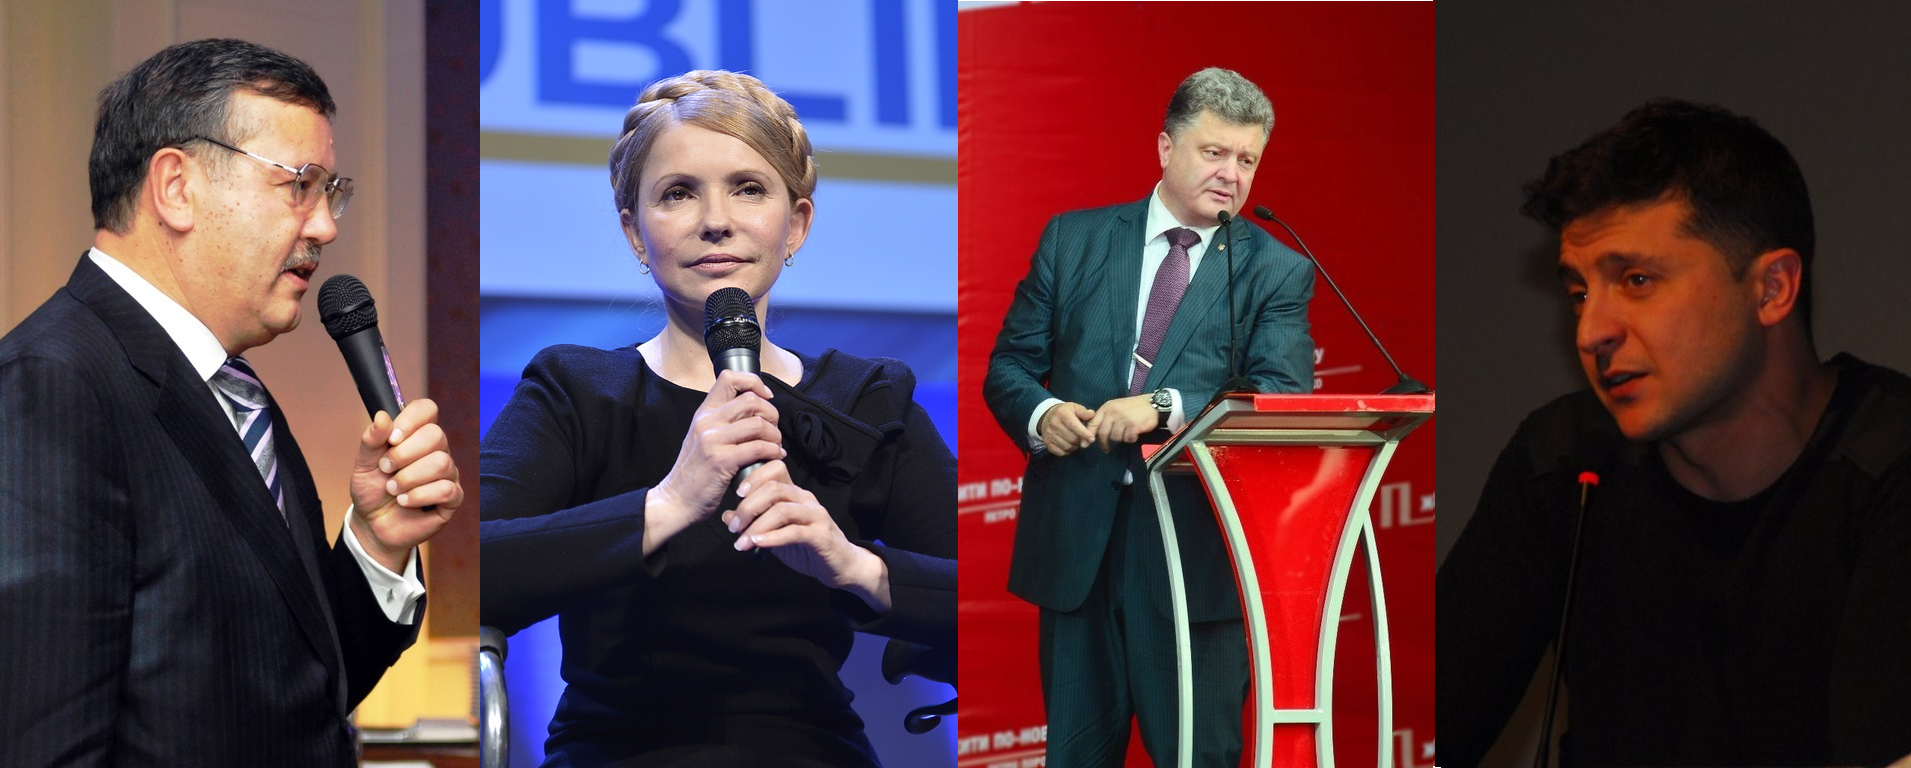 Voices on the street: young Ukrainians on the 2019 election